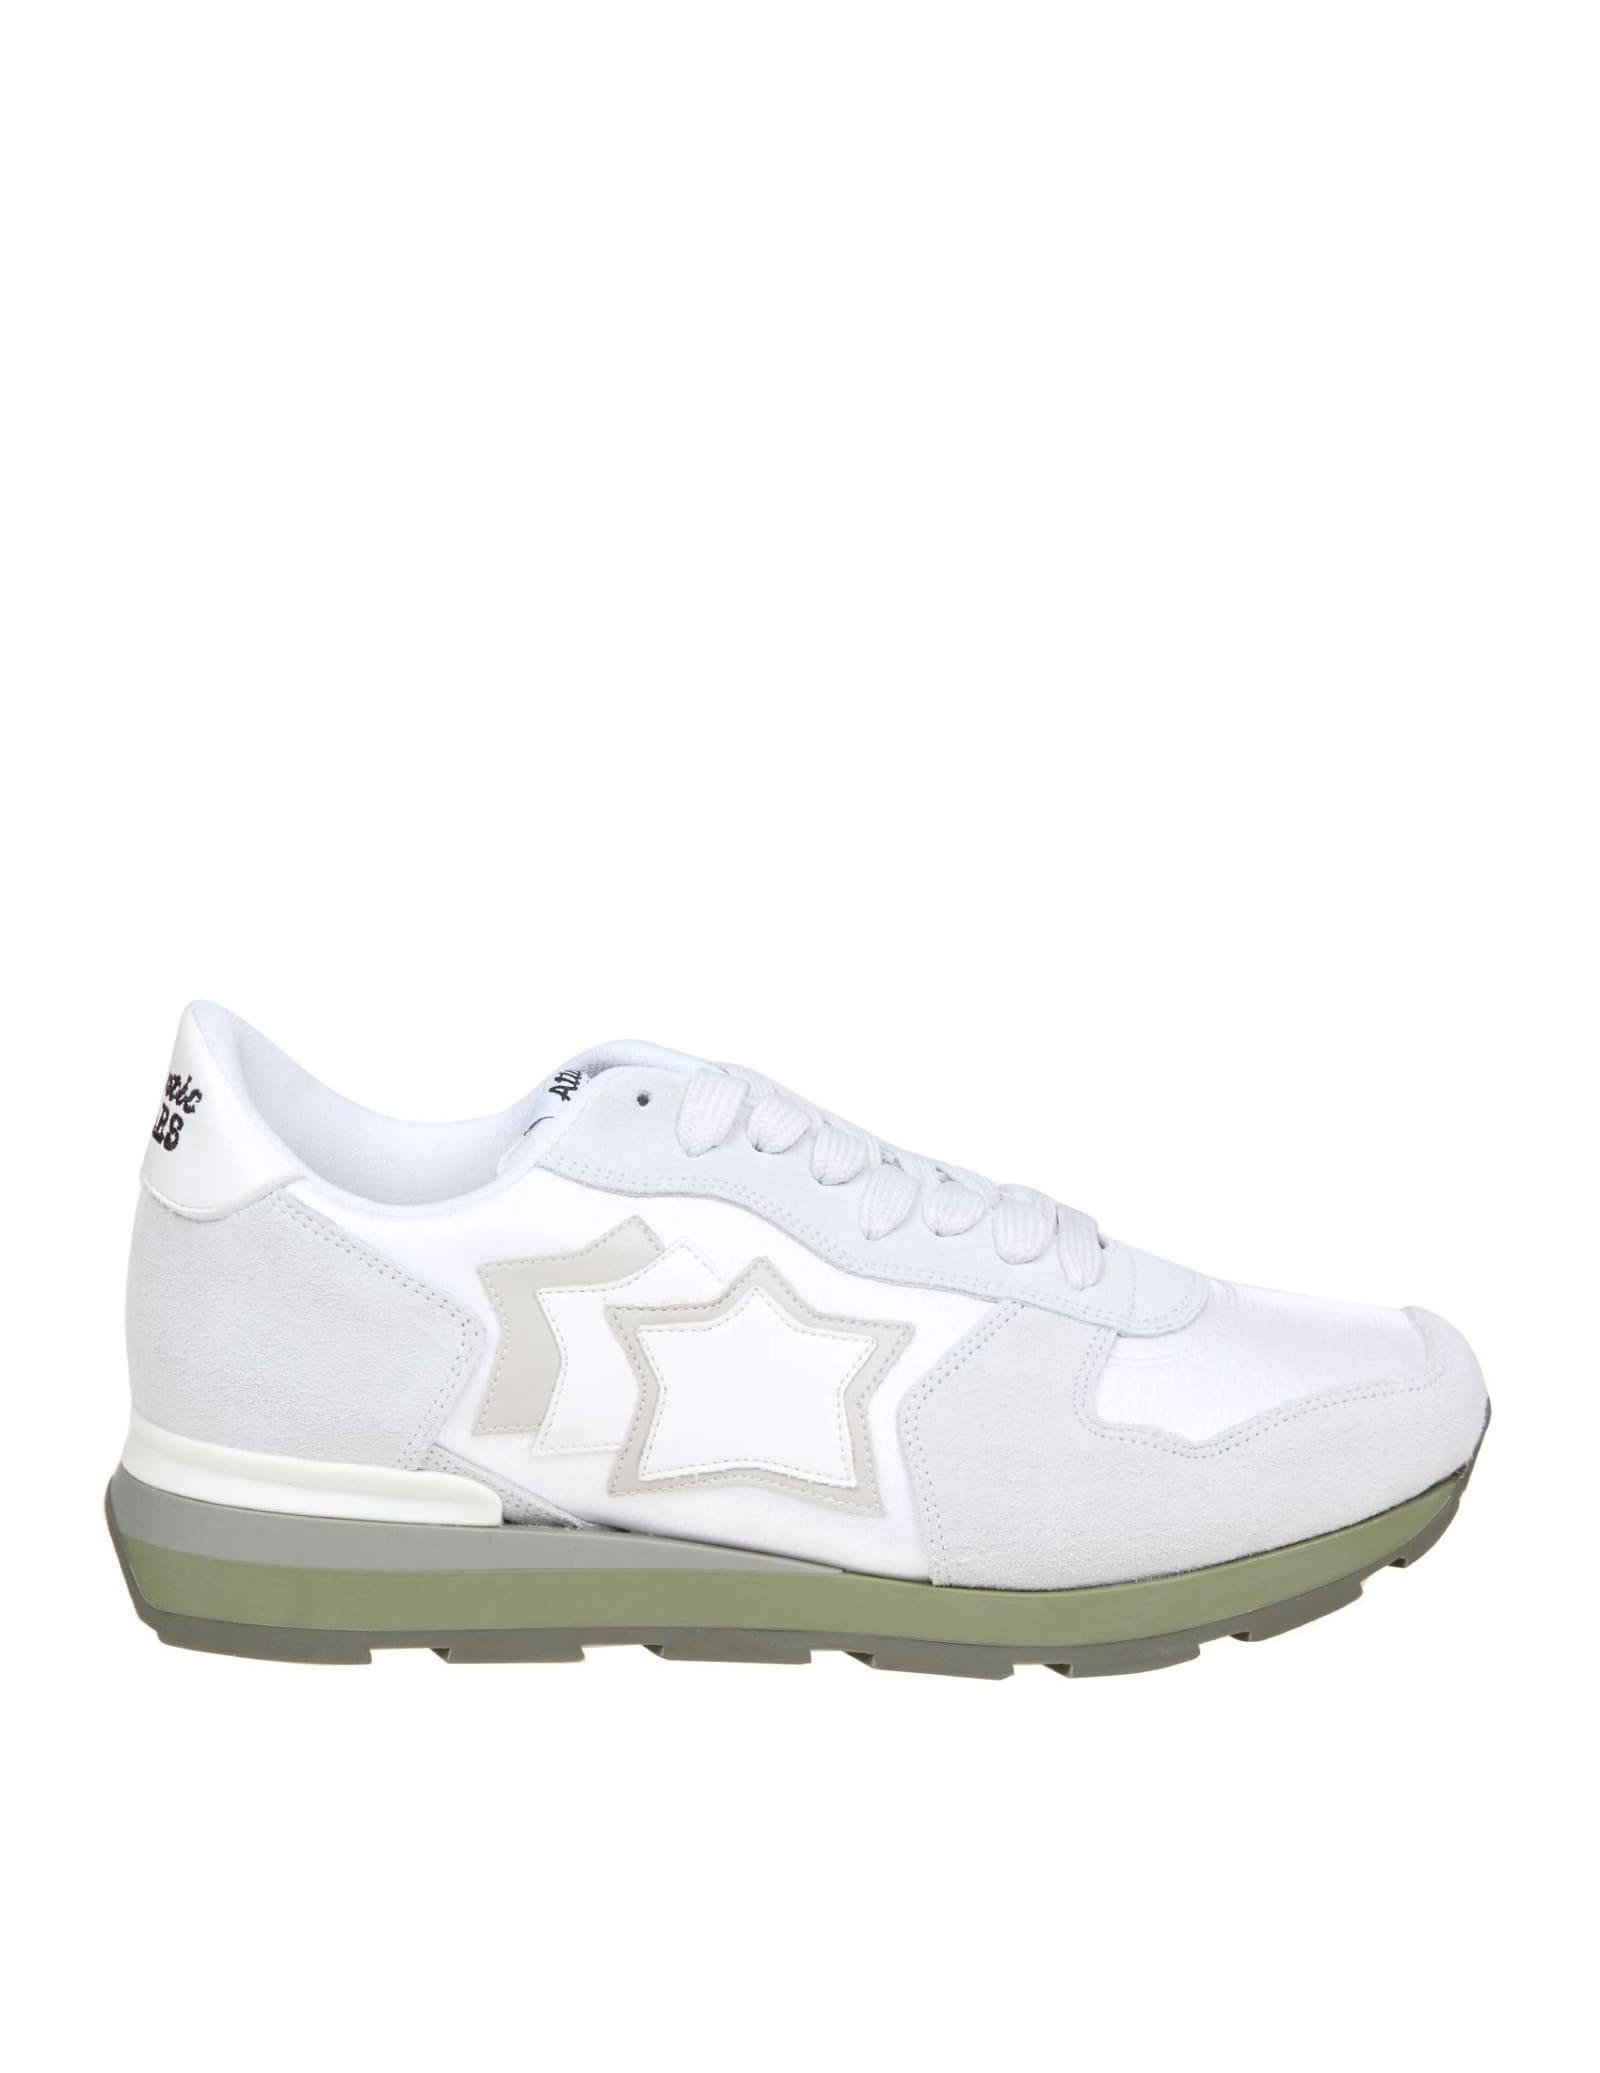 Atlantic Stars Antares Sneakers In Suede And White Fabric